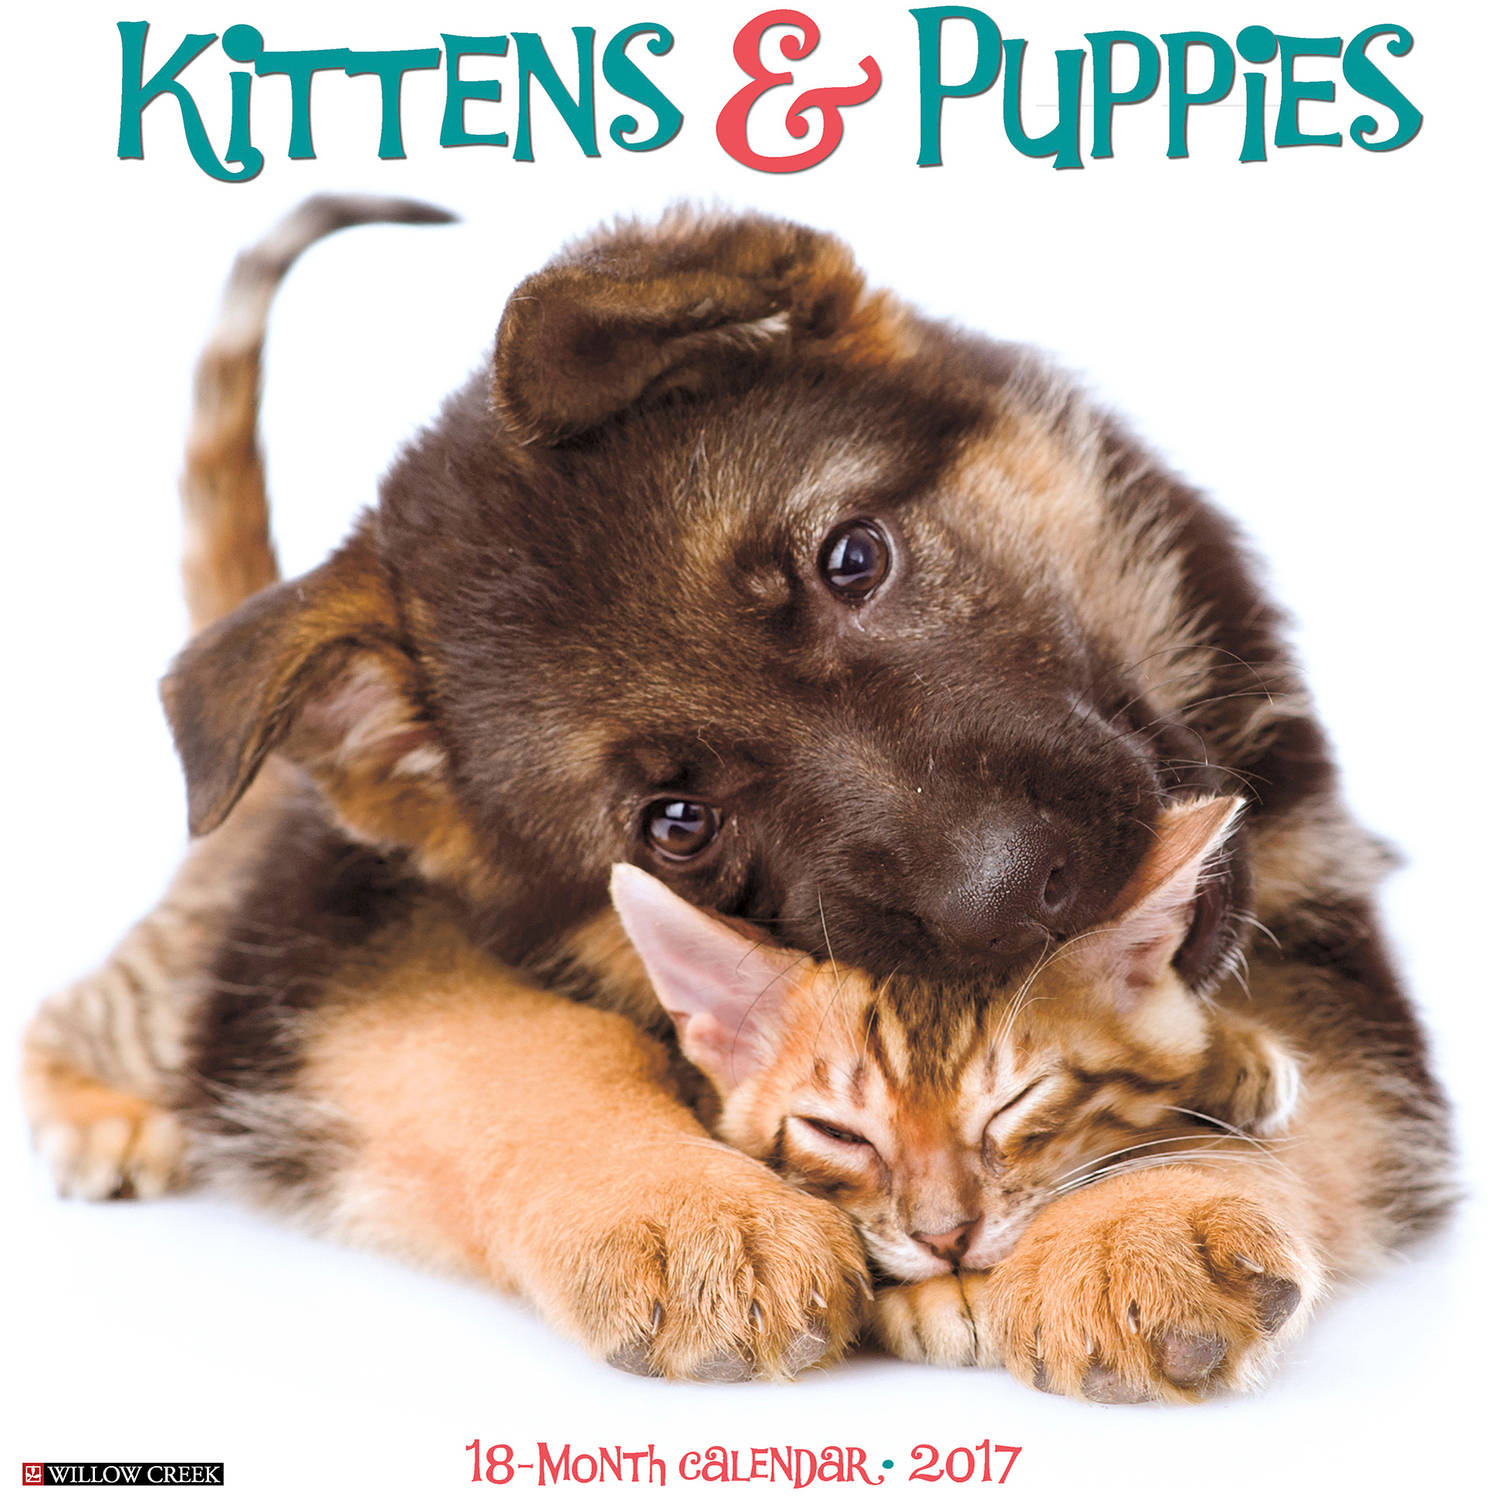 2017 Kittens and Puppies Wall Calendar